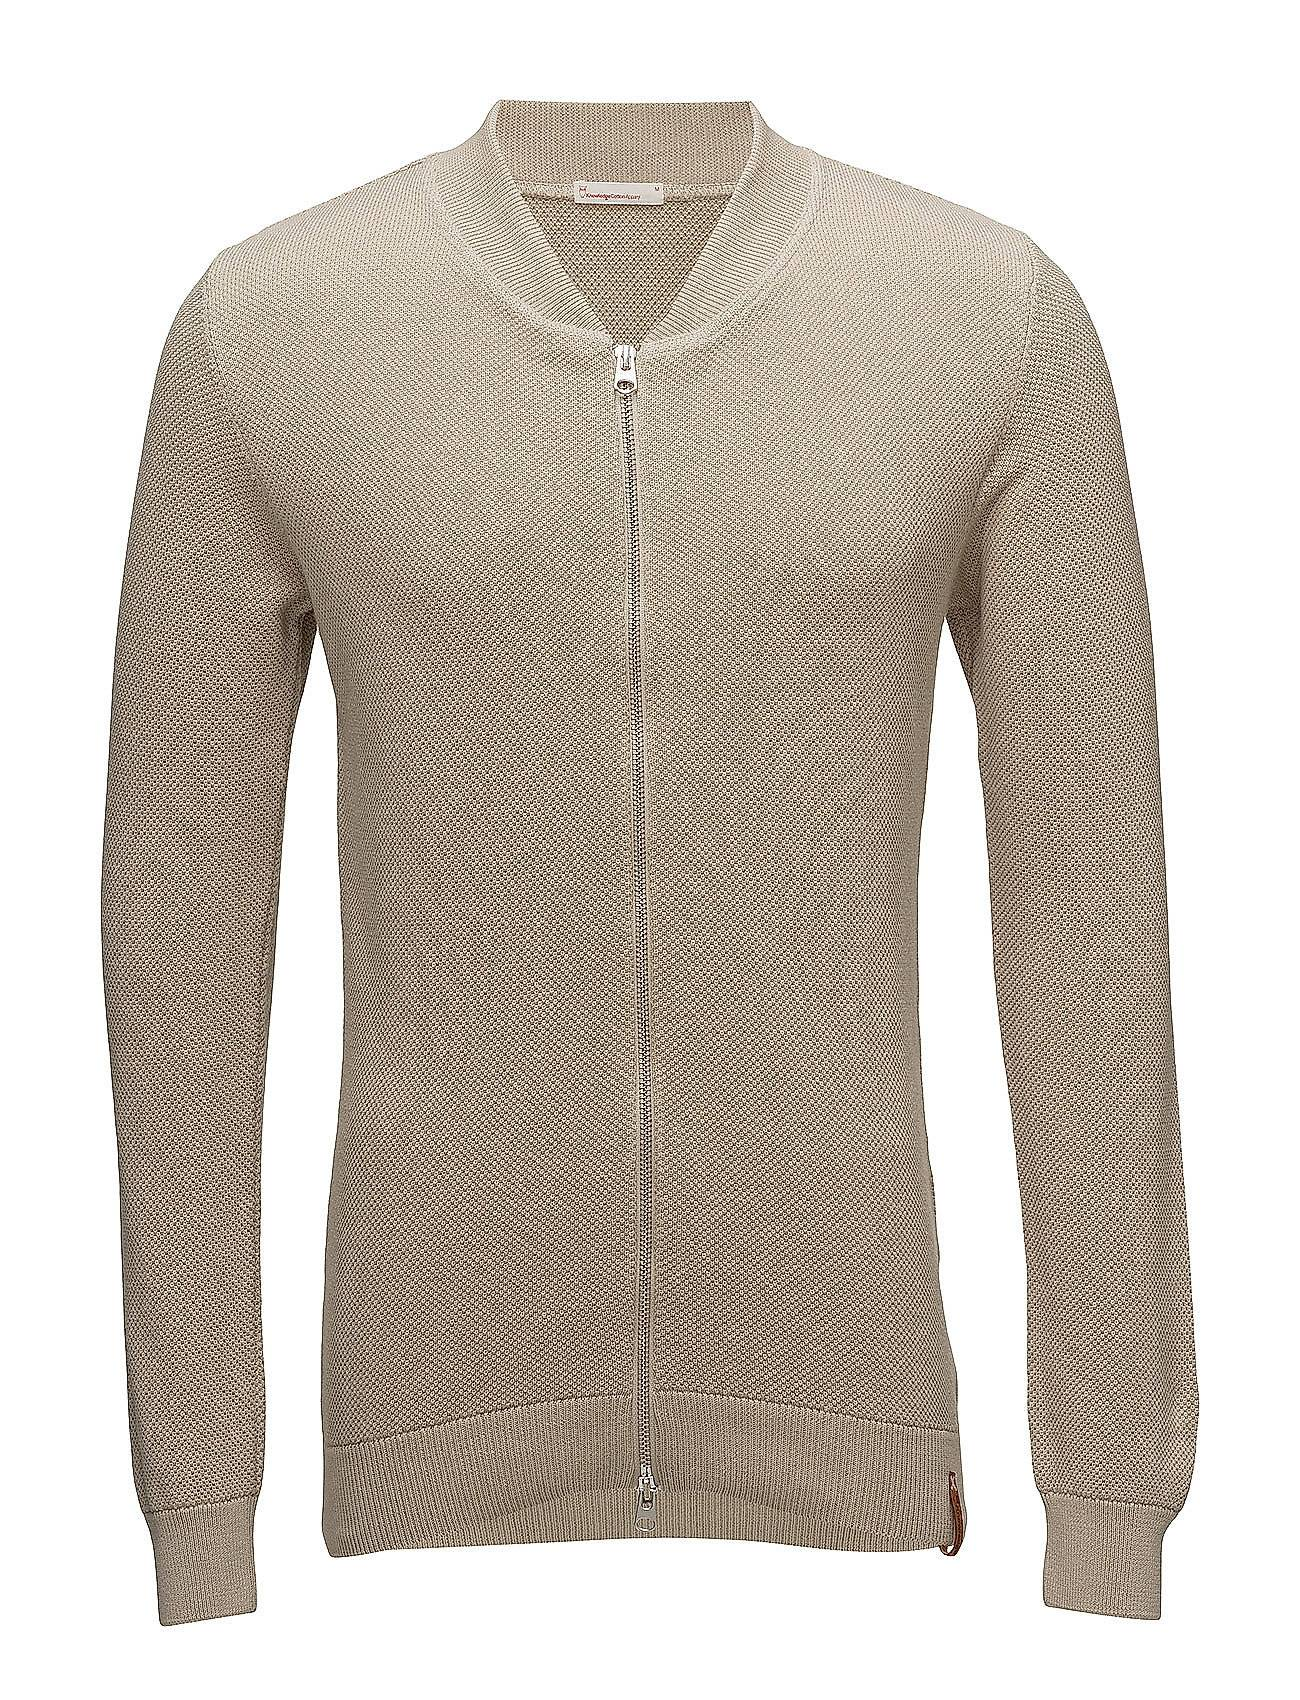 Knowledge Cotton Apparel Pique Knitted Cardigan   - Gots